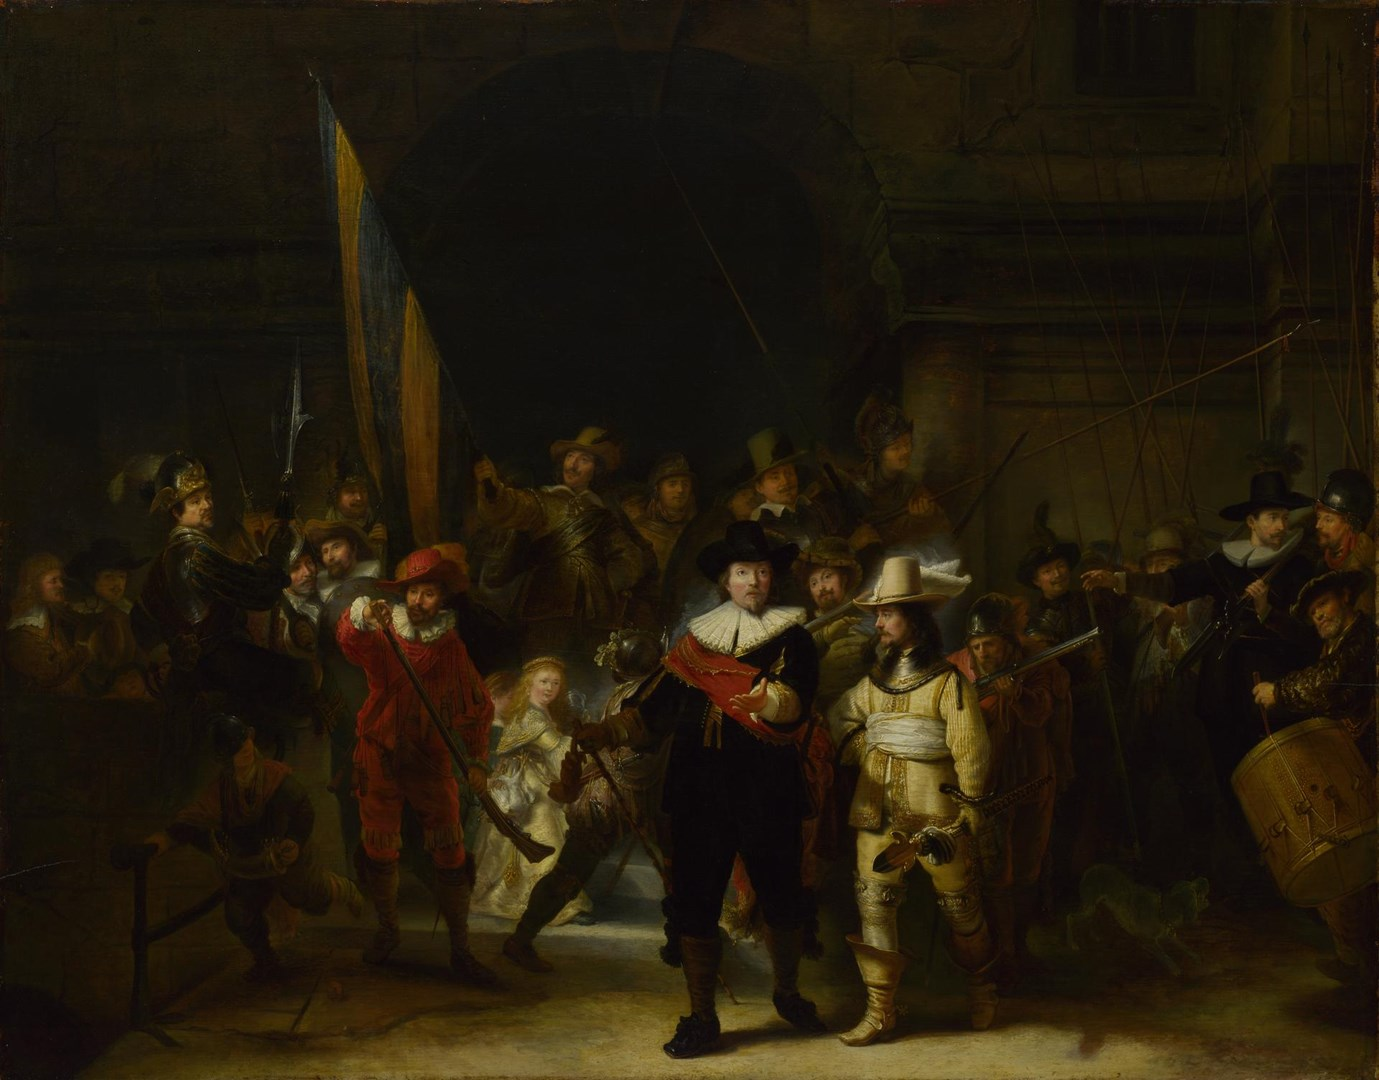 The Company of Captain Banning Cocq ('The Nightwatch') by Gerrit Lundens (after Rembrandt)